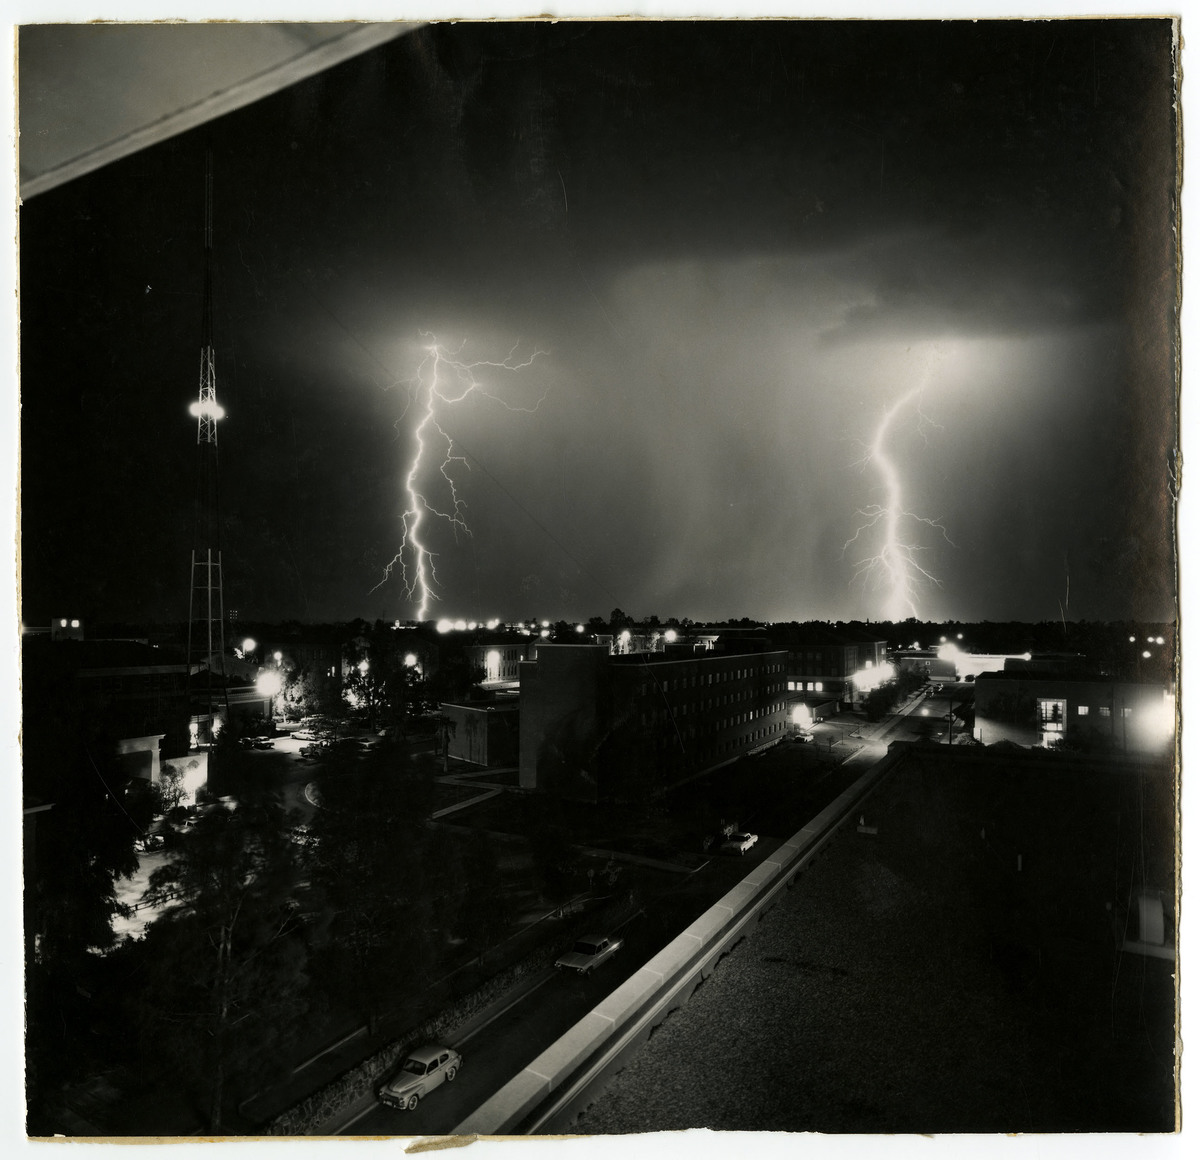 May Swenson, photo of lightning